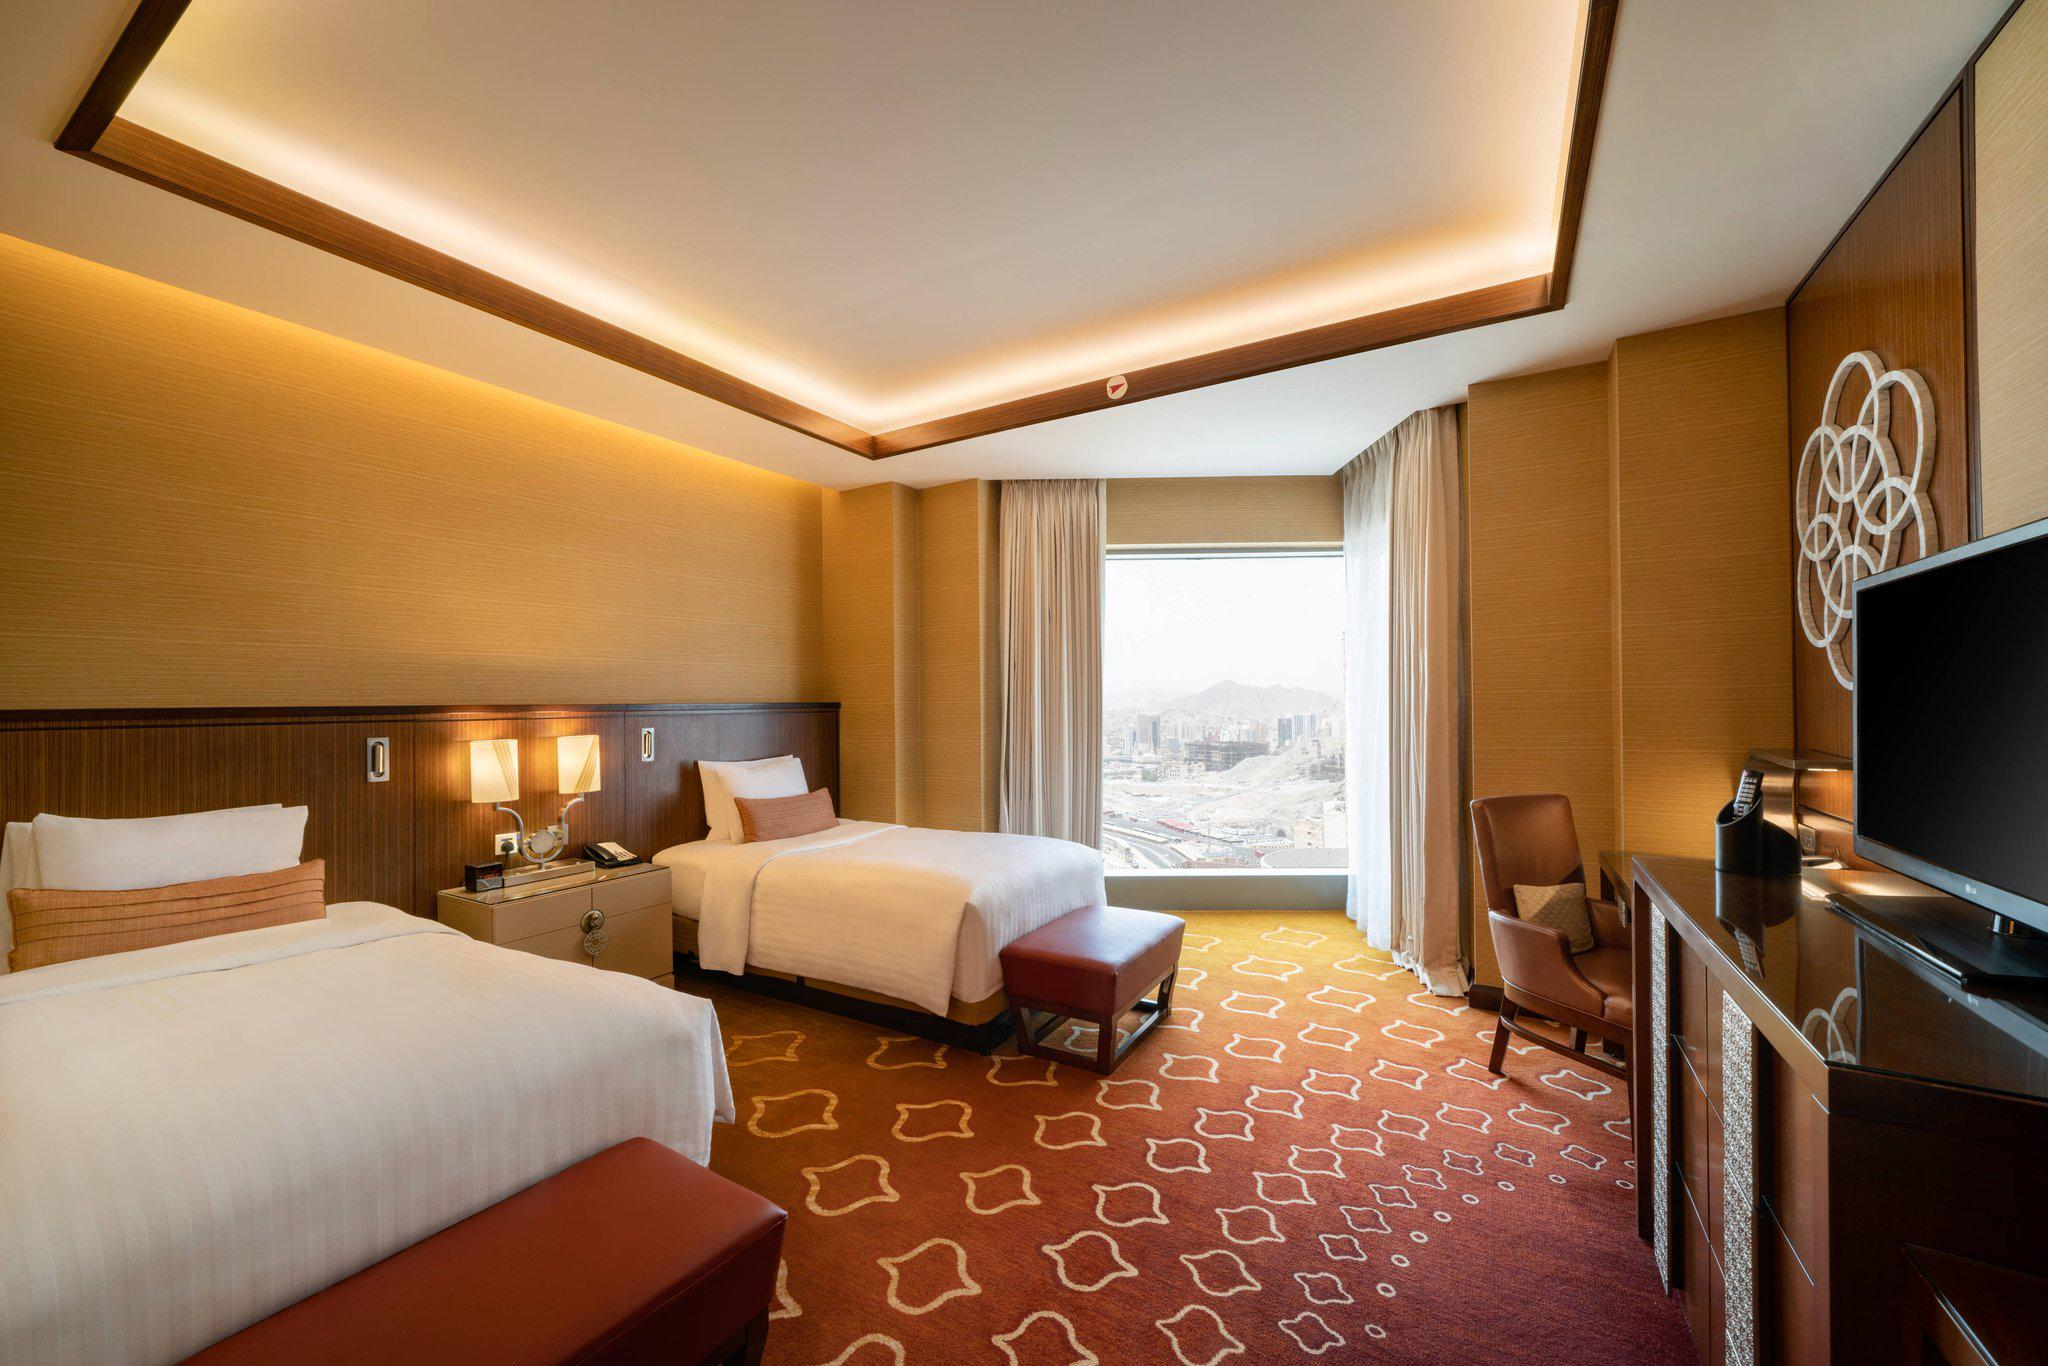 Jabal Omar Marriott Hotel, Makkah